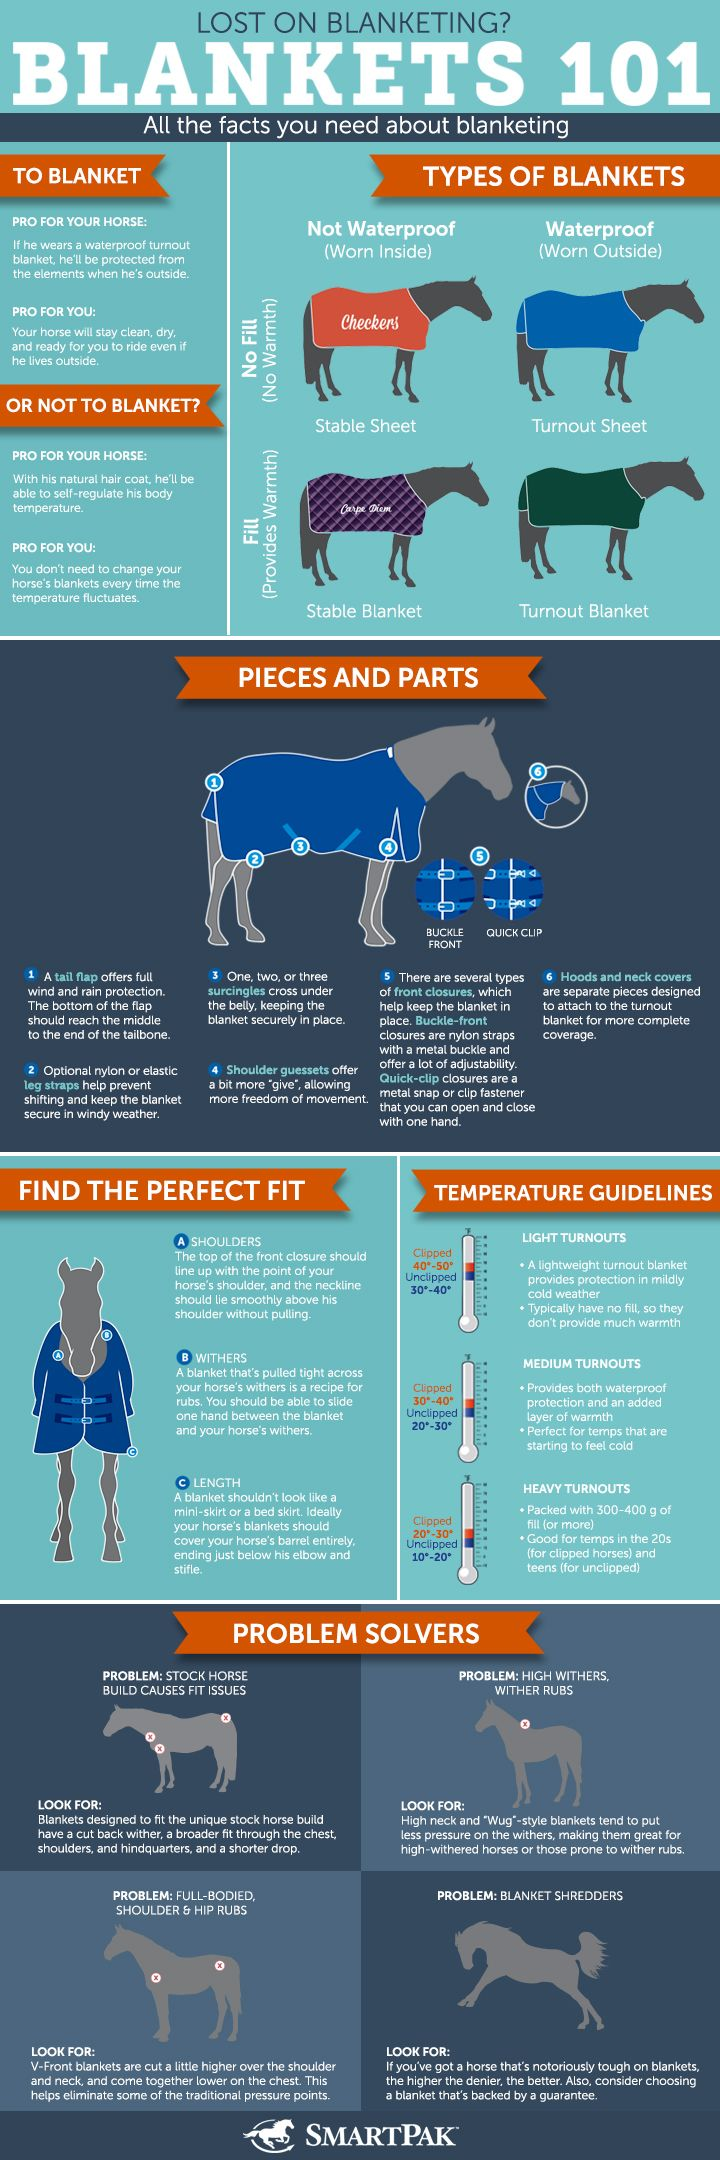 Confused about when and how to blanket your horse? Check out our handy guide!